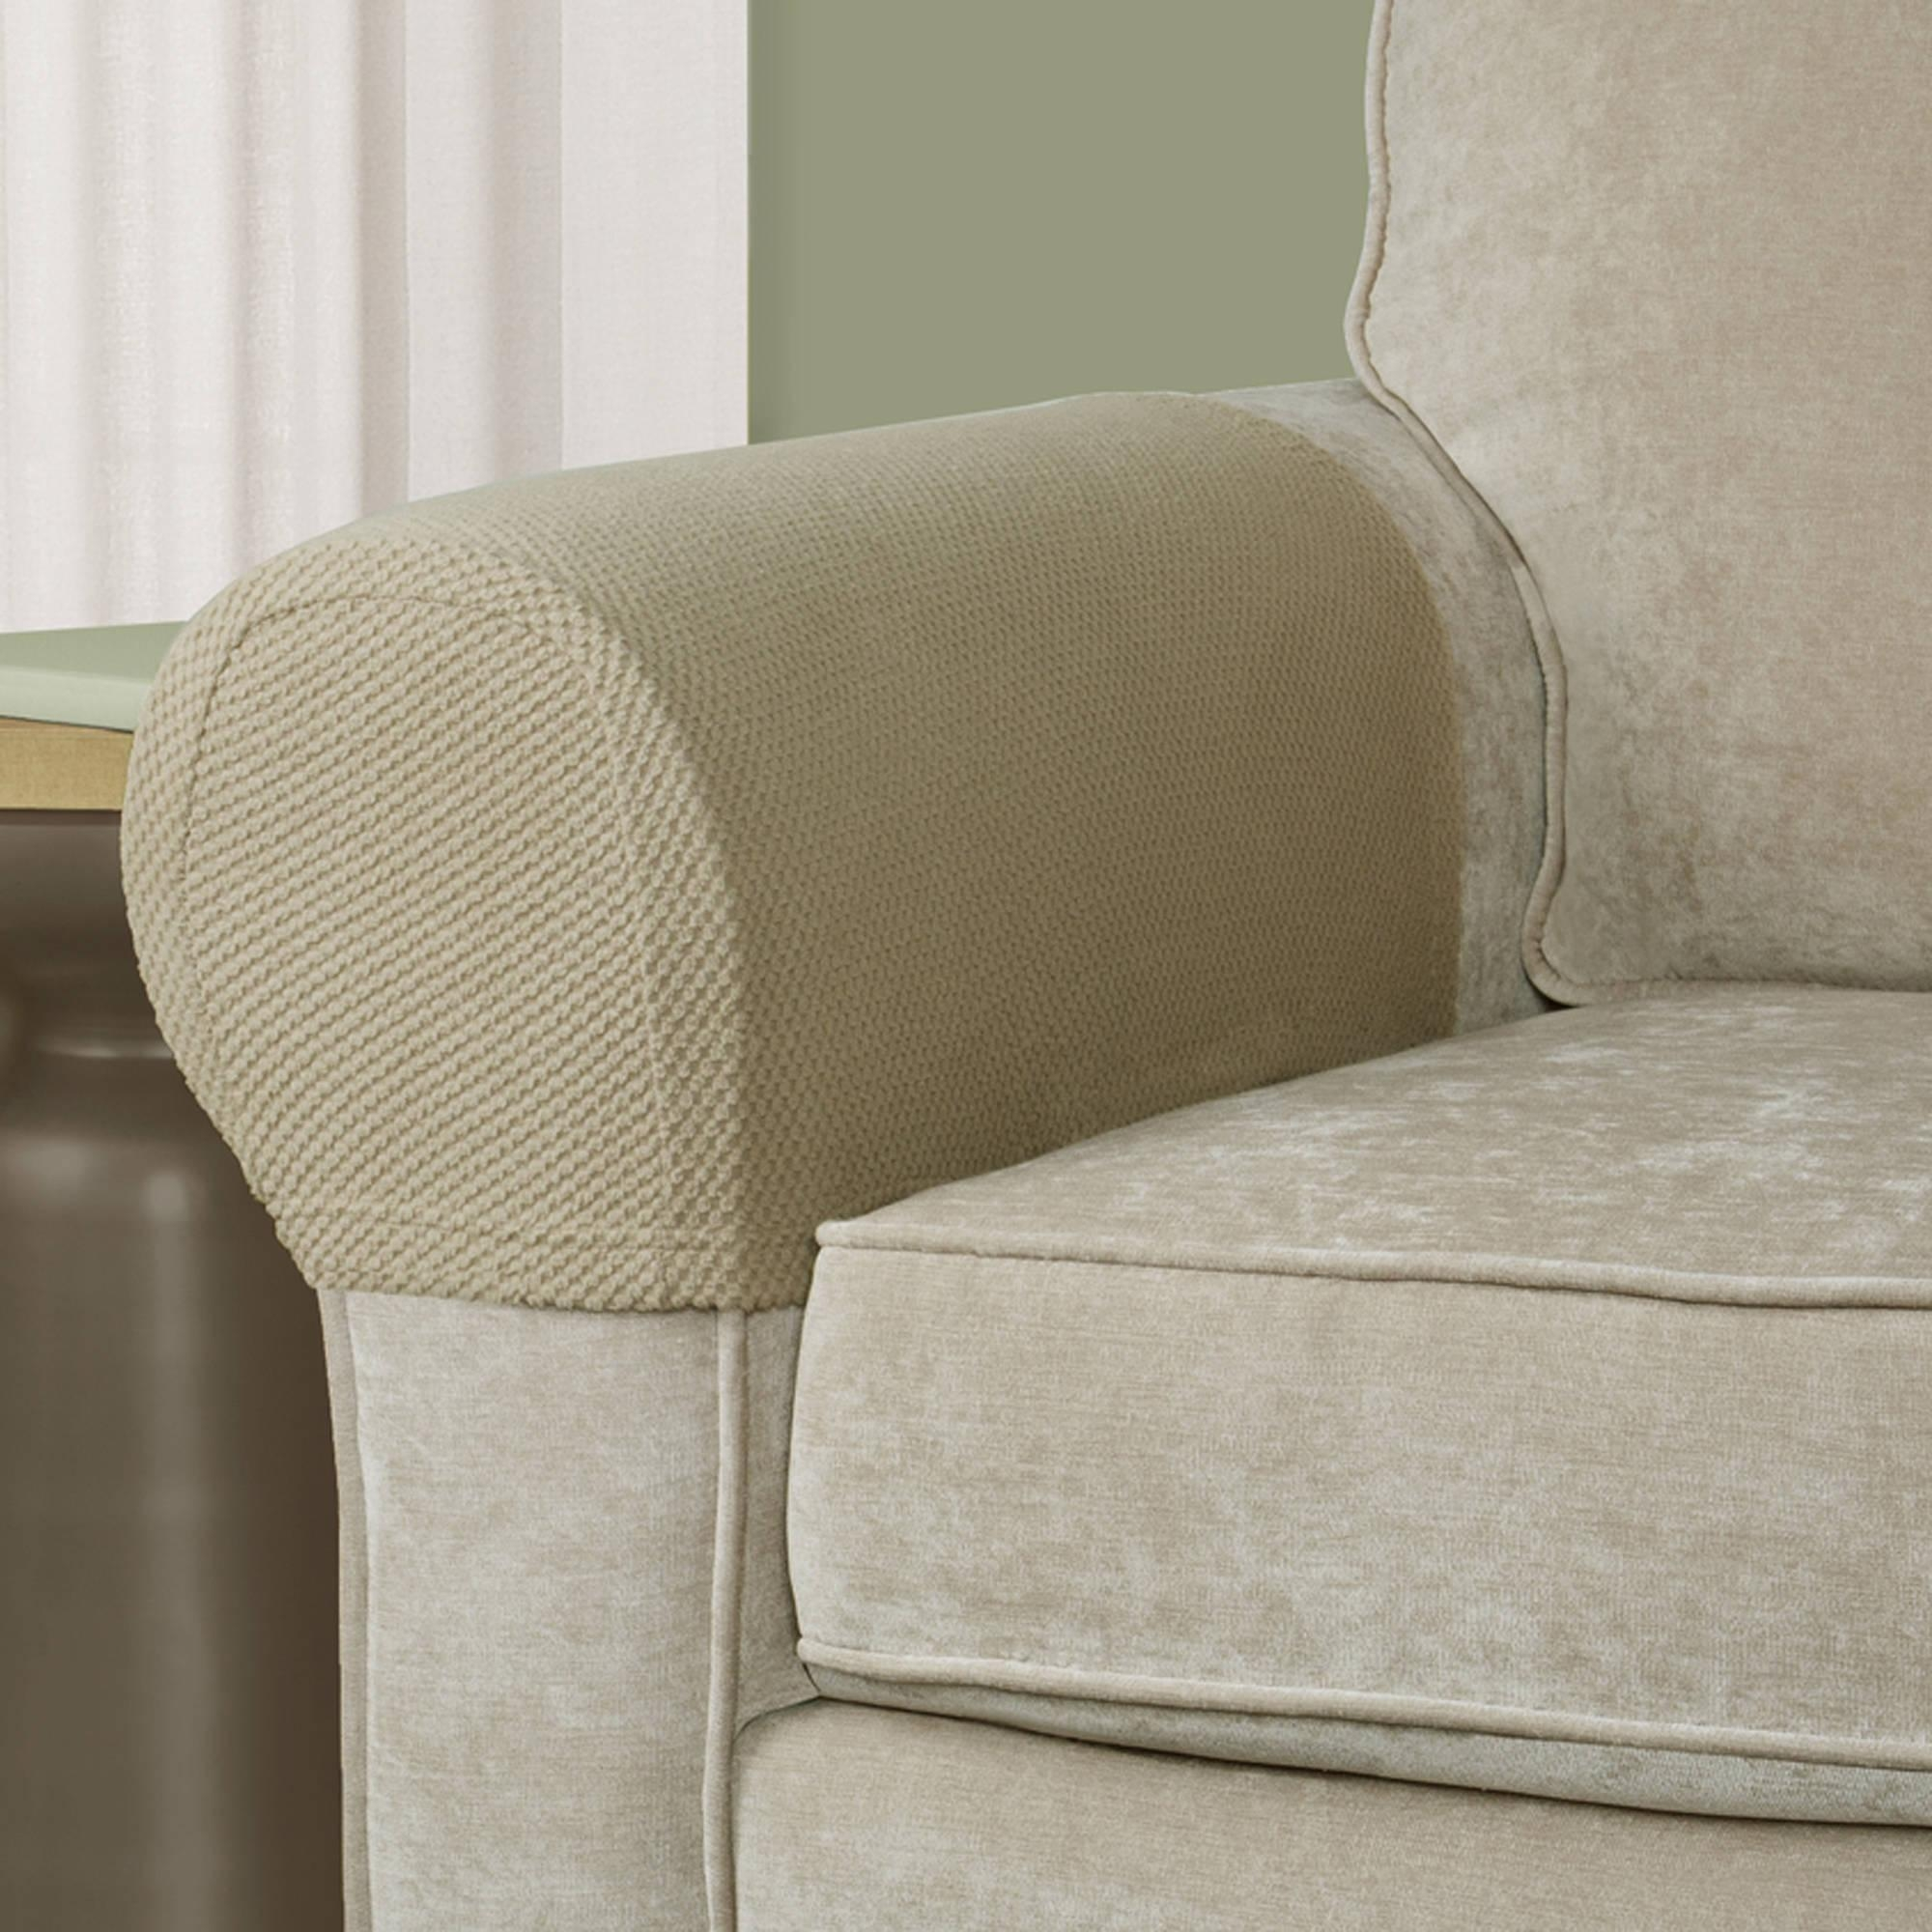 Mainstays Pixel Stretch Fabric Furniture Armrest Covers – Walmart With Regard To Sofa And Chair Covers (View 7 of 20)